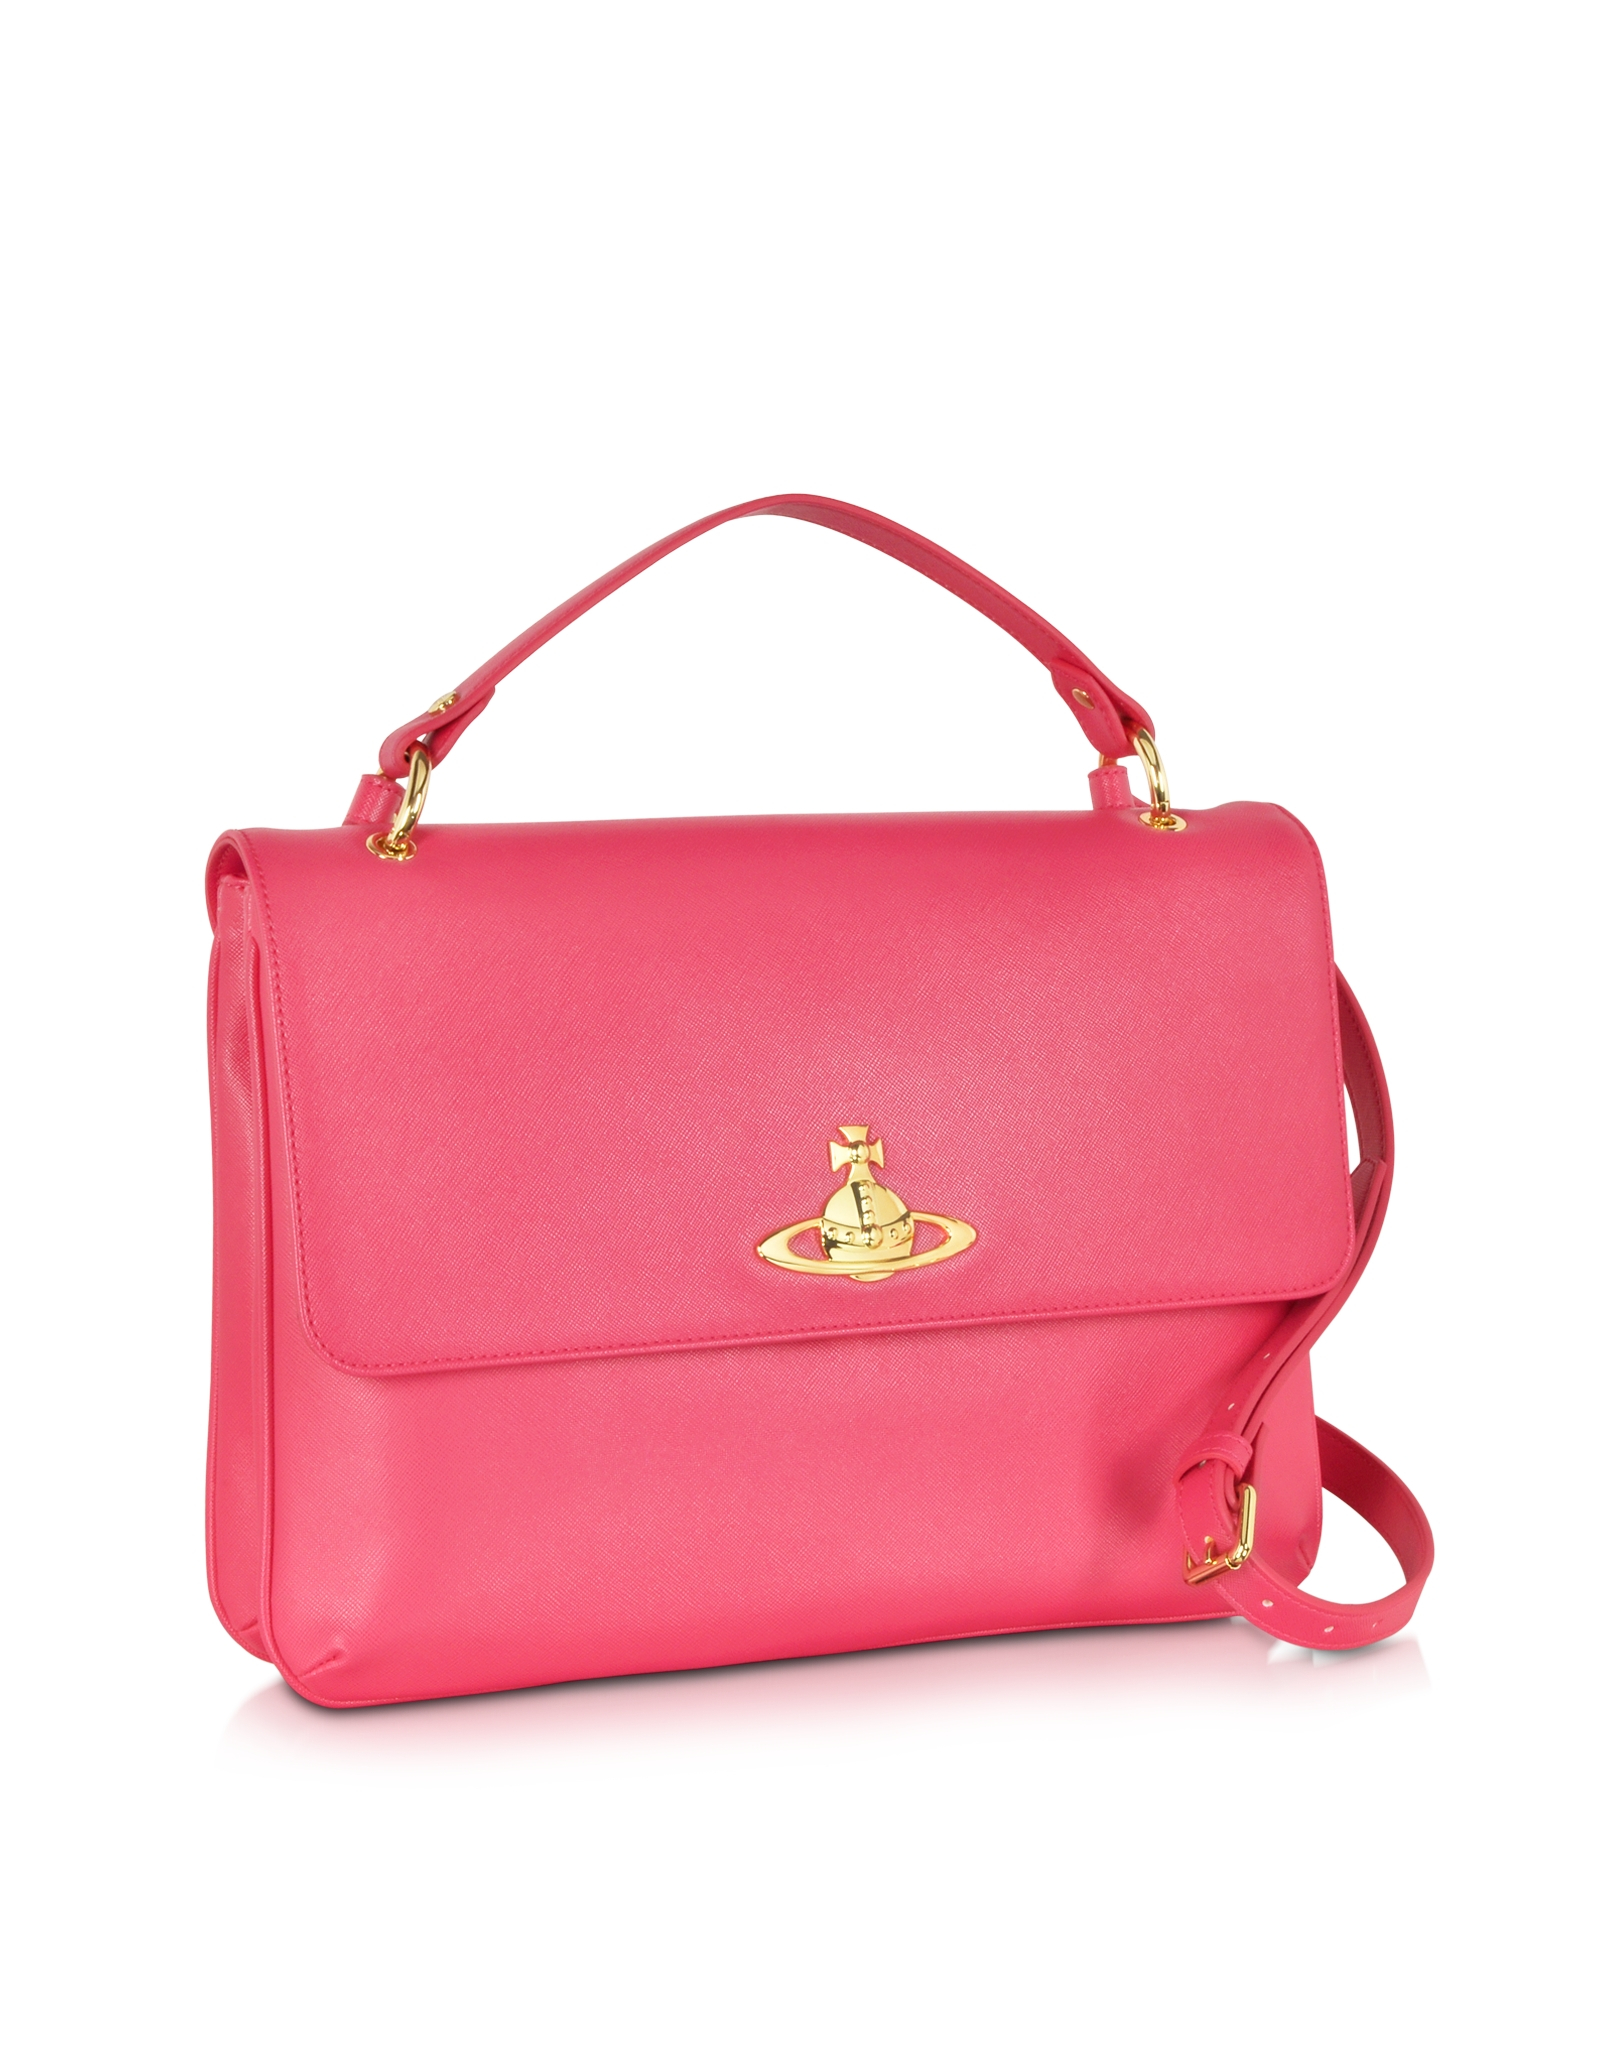 4ba150d948b3 Lyst - Vivienne Westwood Divina Coral Eco-Leather Crossbody Bag in Pink